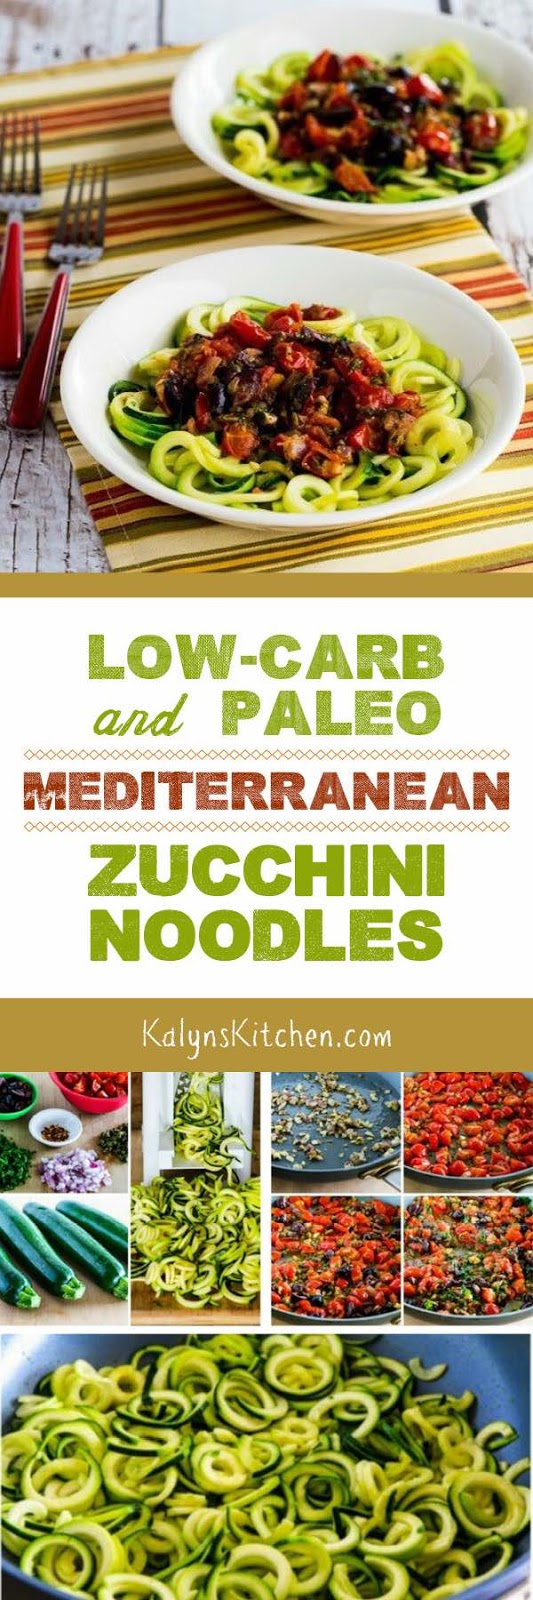 Kalyn's Kitchen®: Low-Carb and Paleo Mediterranean Zucchini Noodles